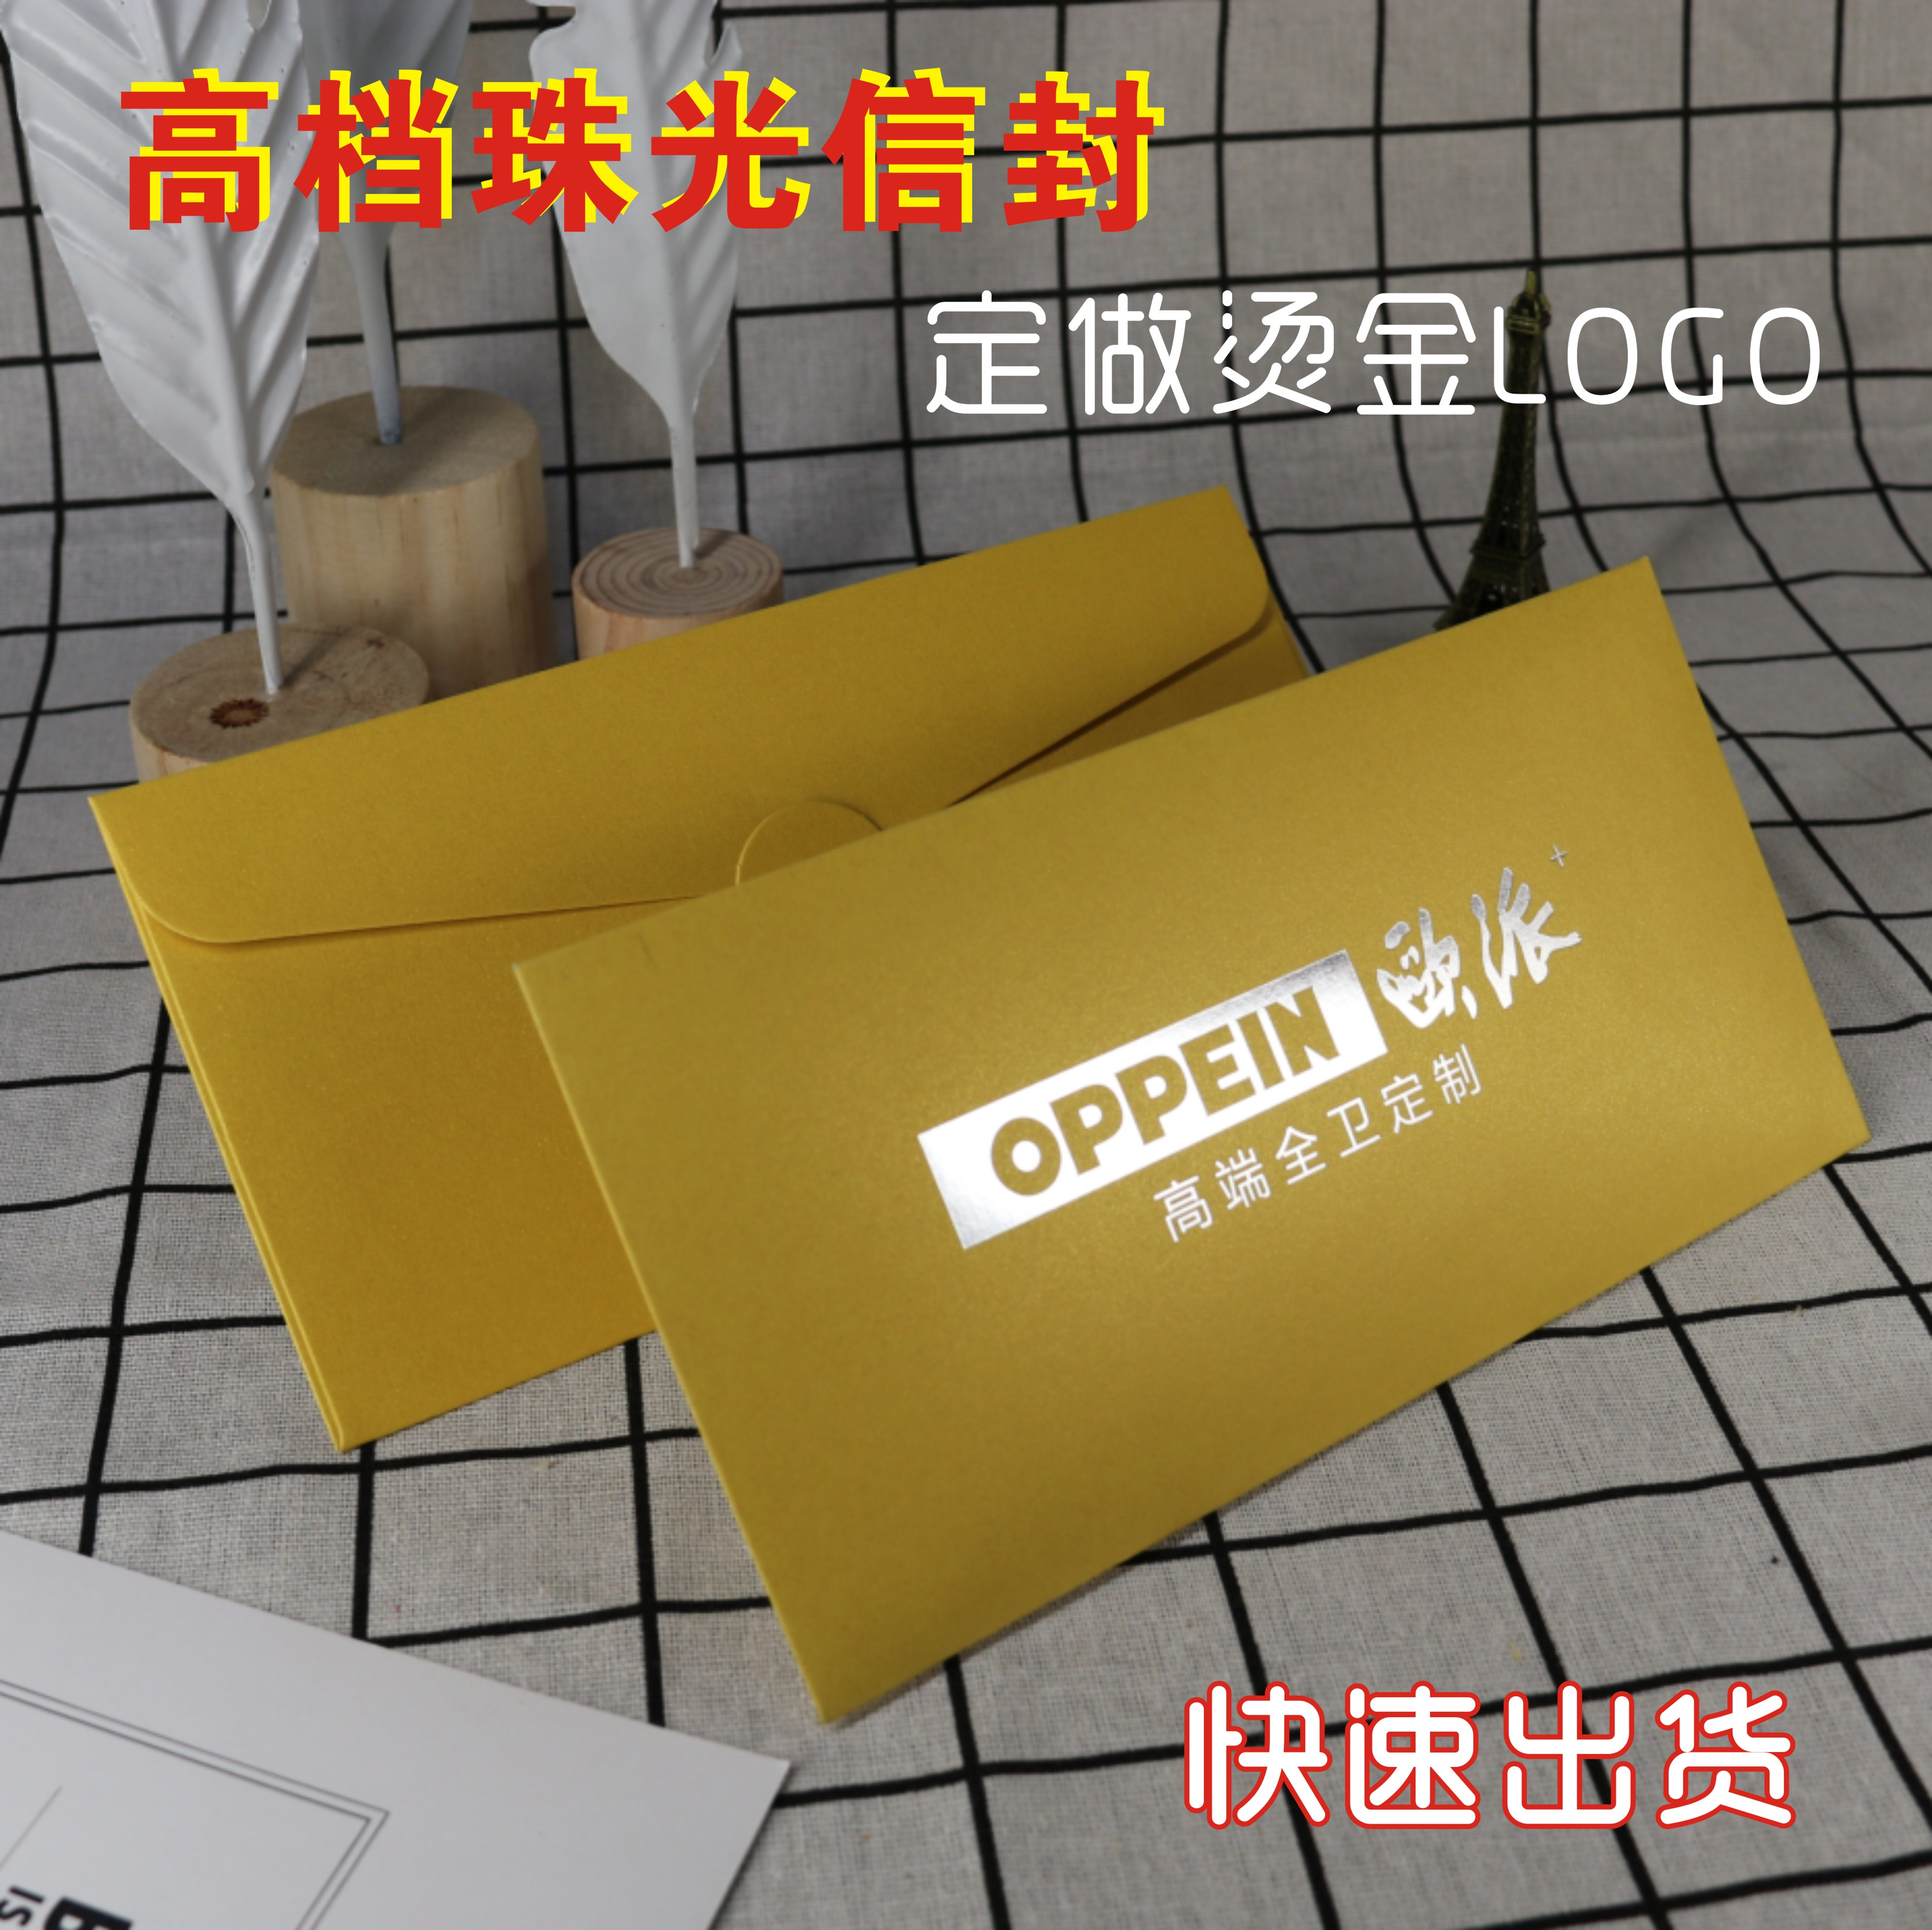 Customized high-grade pearlescent paper envelope production customized Western invitation envelope bag bronzing printing company logo